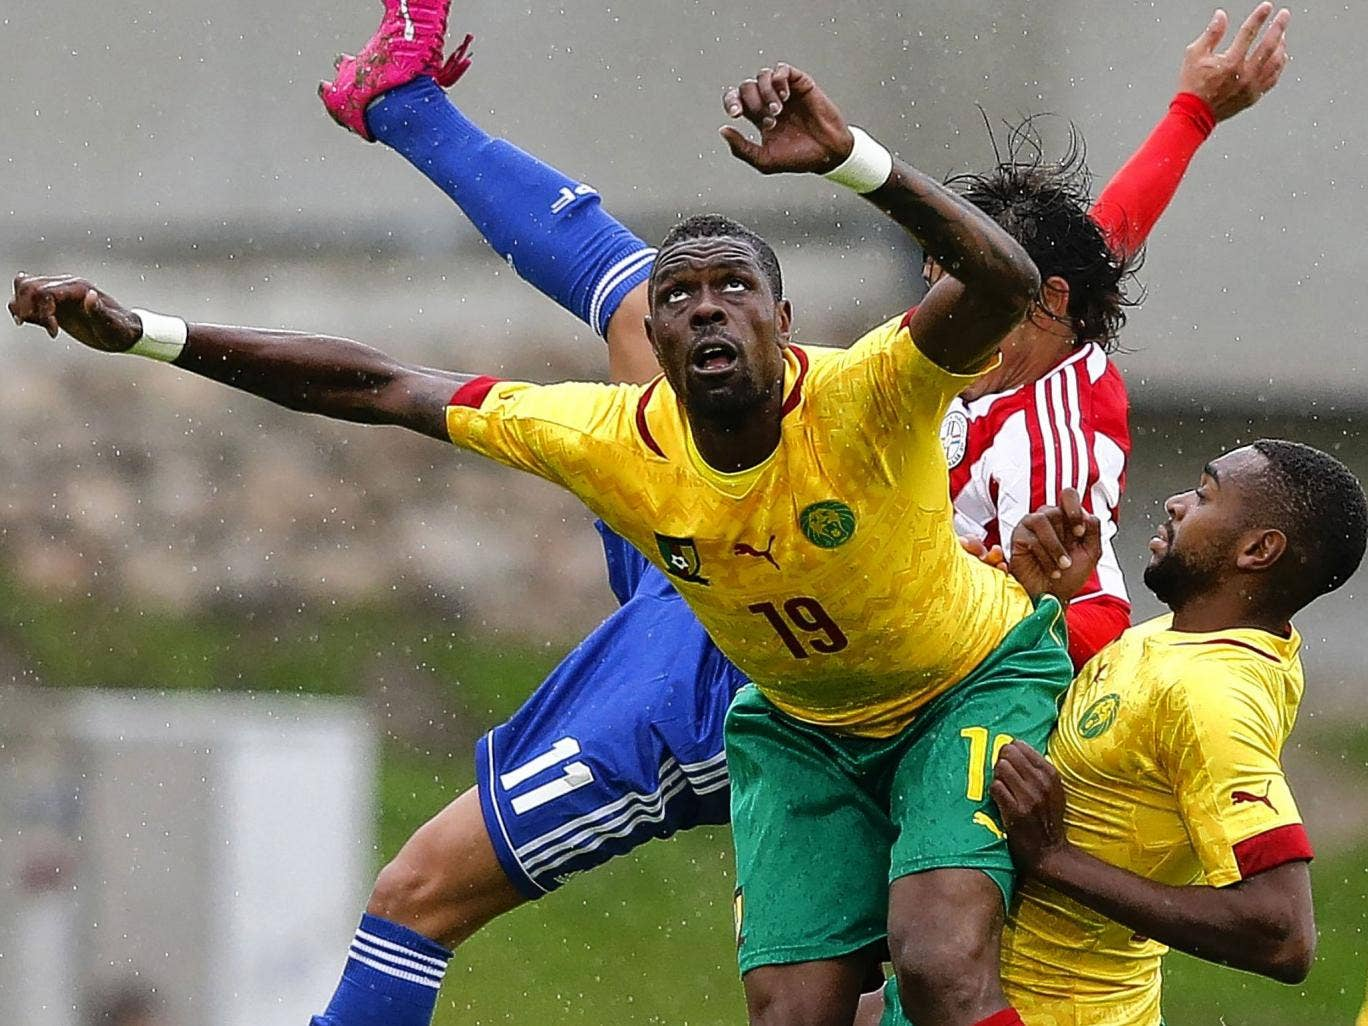 Cameroon's Idrissou Mohammadou (left) in action in a friendly against Paraguay last month